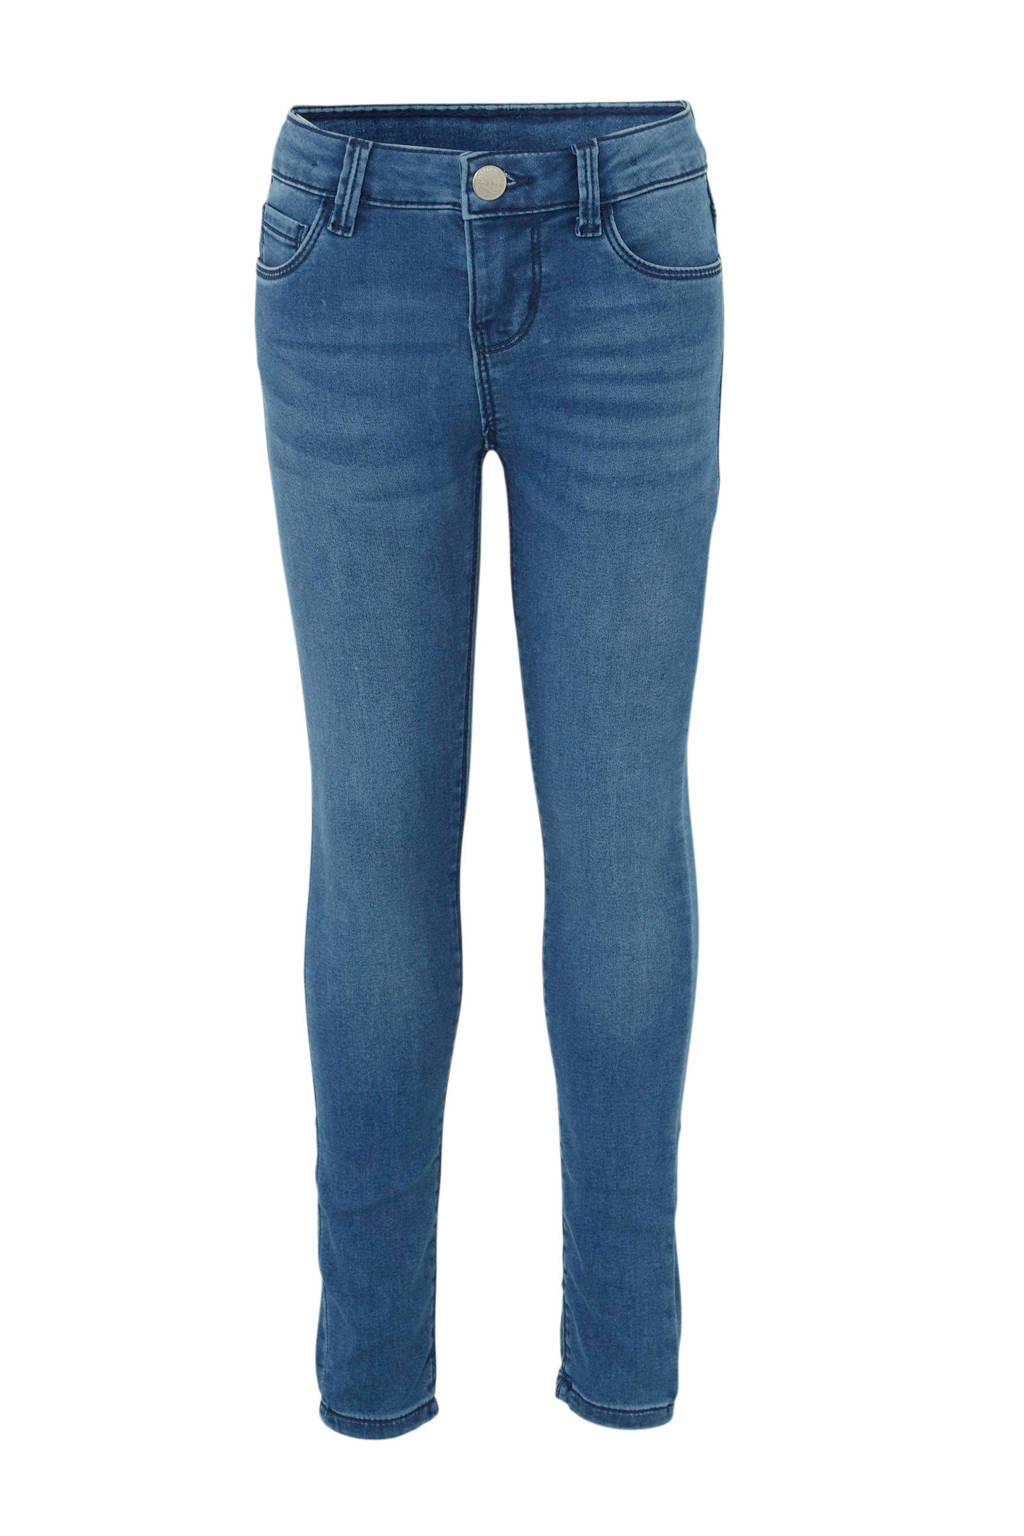 C&A Here & There super skinny jeans, Blauw